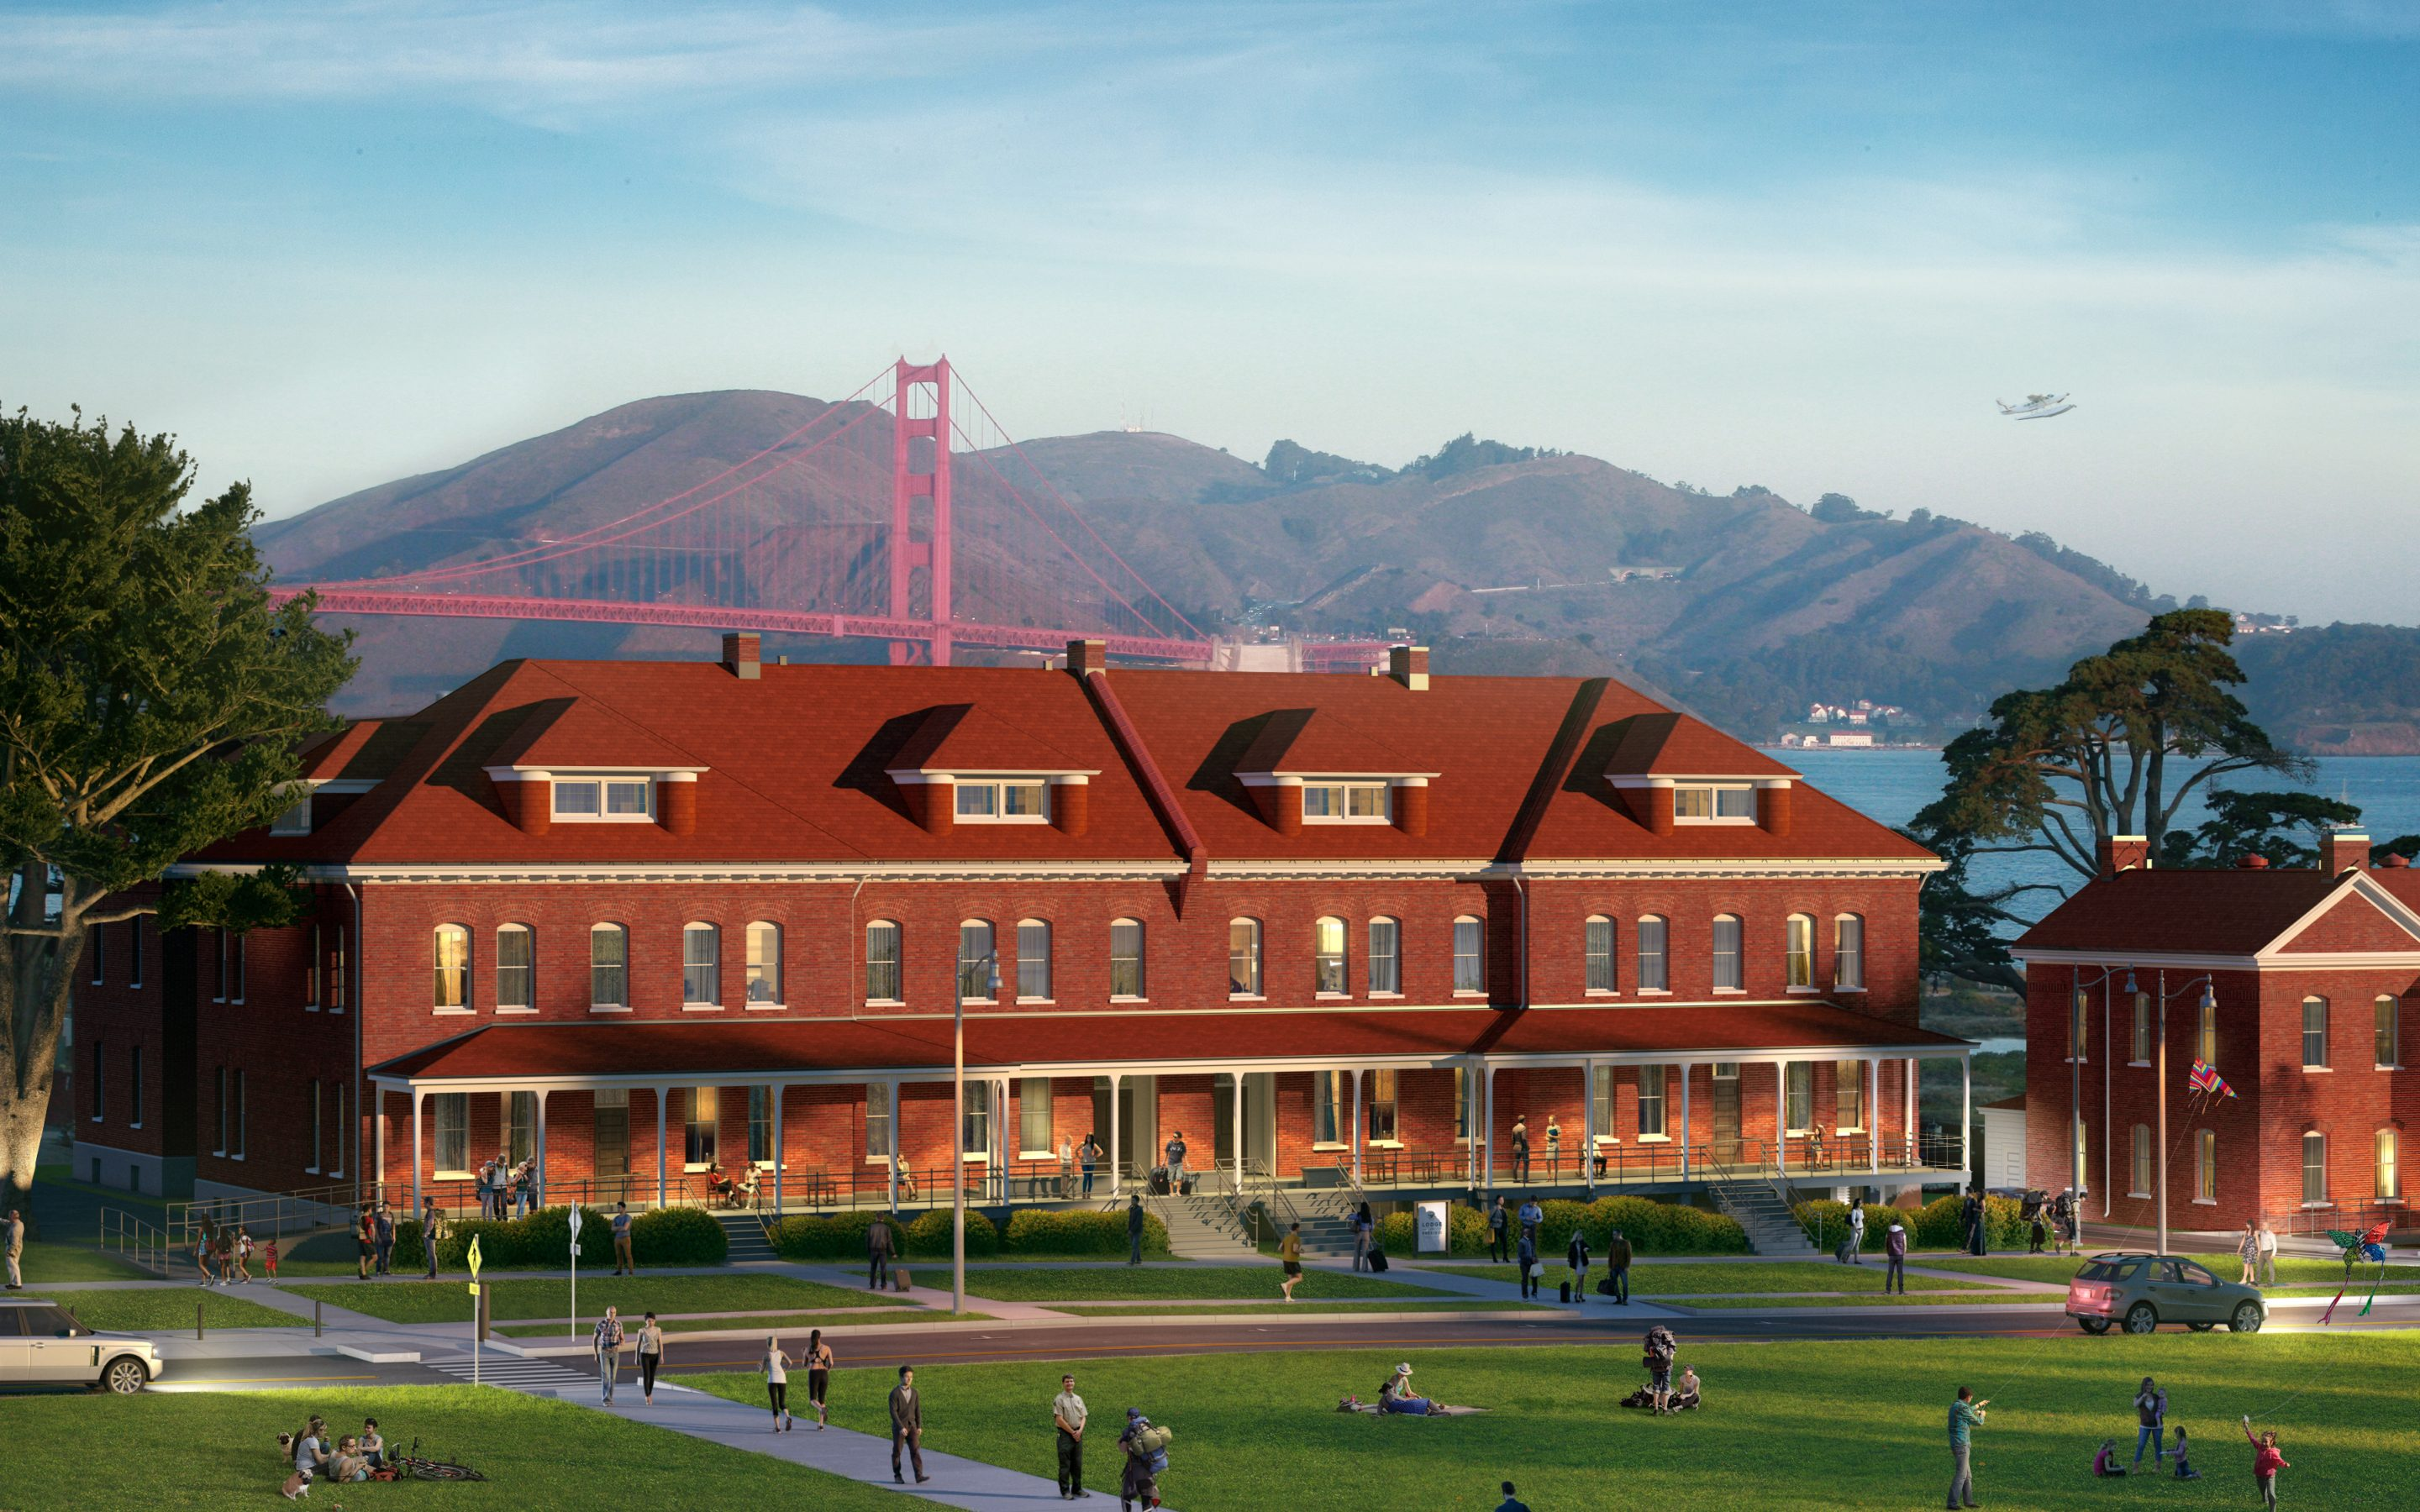 Lodge at the Presidio Opening in San Francisco's National Park- June 28, 2018